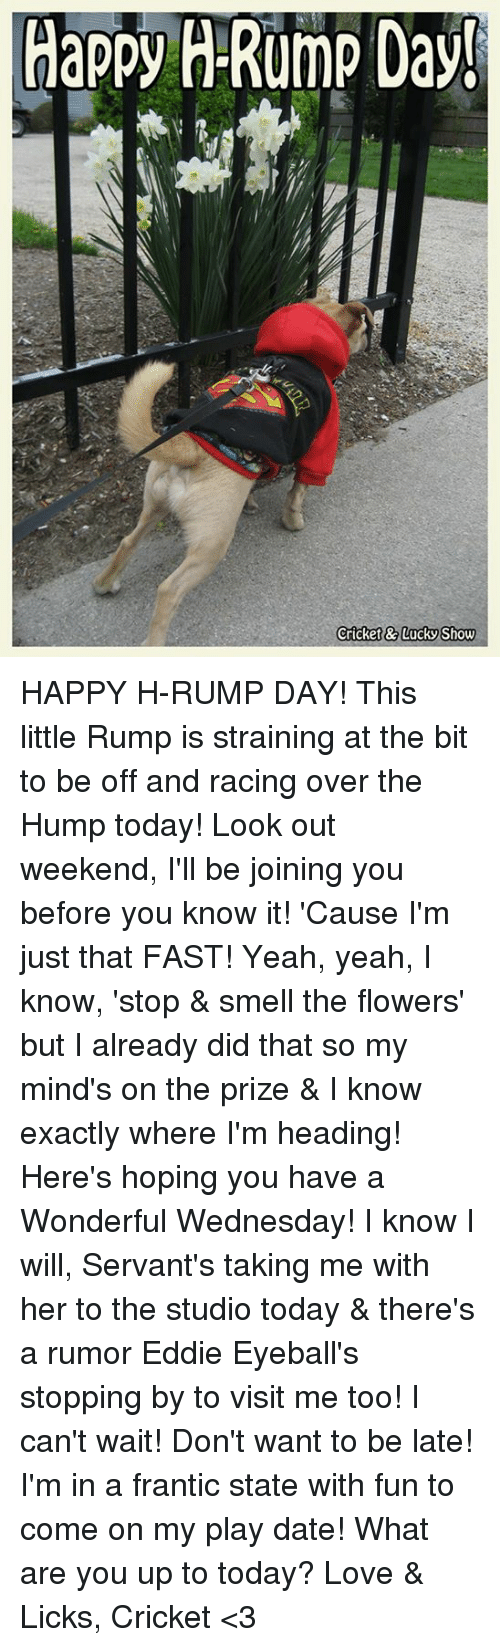 Love, Memes, and Smell: Happy H-Rump Day!  Cricket&7LUCKS how HAPPY H-RUMP DAY!  This little Rump is straining at the bit to be off and racing over the Hump today!  Look out weekend, I'll be joining you before you know it!  'Cause I'm just that FAST!  Yeah, yeah, I know, 'stop & smell the flowers' but I already did that so my mind's on the prize & I know exactly where I'm heading!  Here's hoping you have a Wonderful Wednesday!  I know I will, Servant's taking me with her to the studio today & there's a rumor Eddie Eyeball's stopping by to visit me too!  I can't wait!  Don't want to be late!  I'm in a frantic state with fun to come on my play date!  What are you up to today?  Love & Licks, Cricket <3